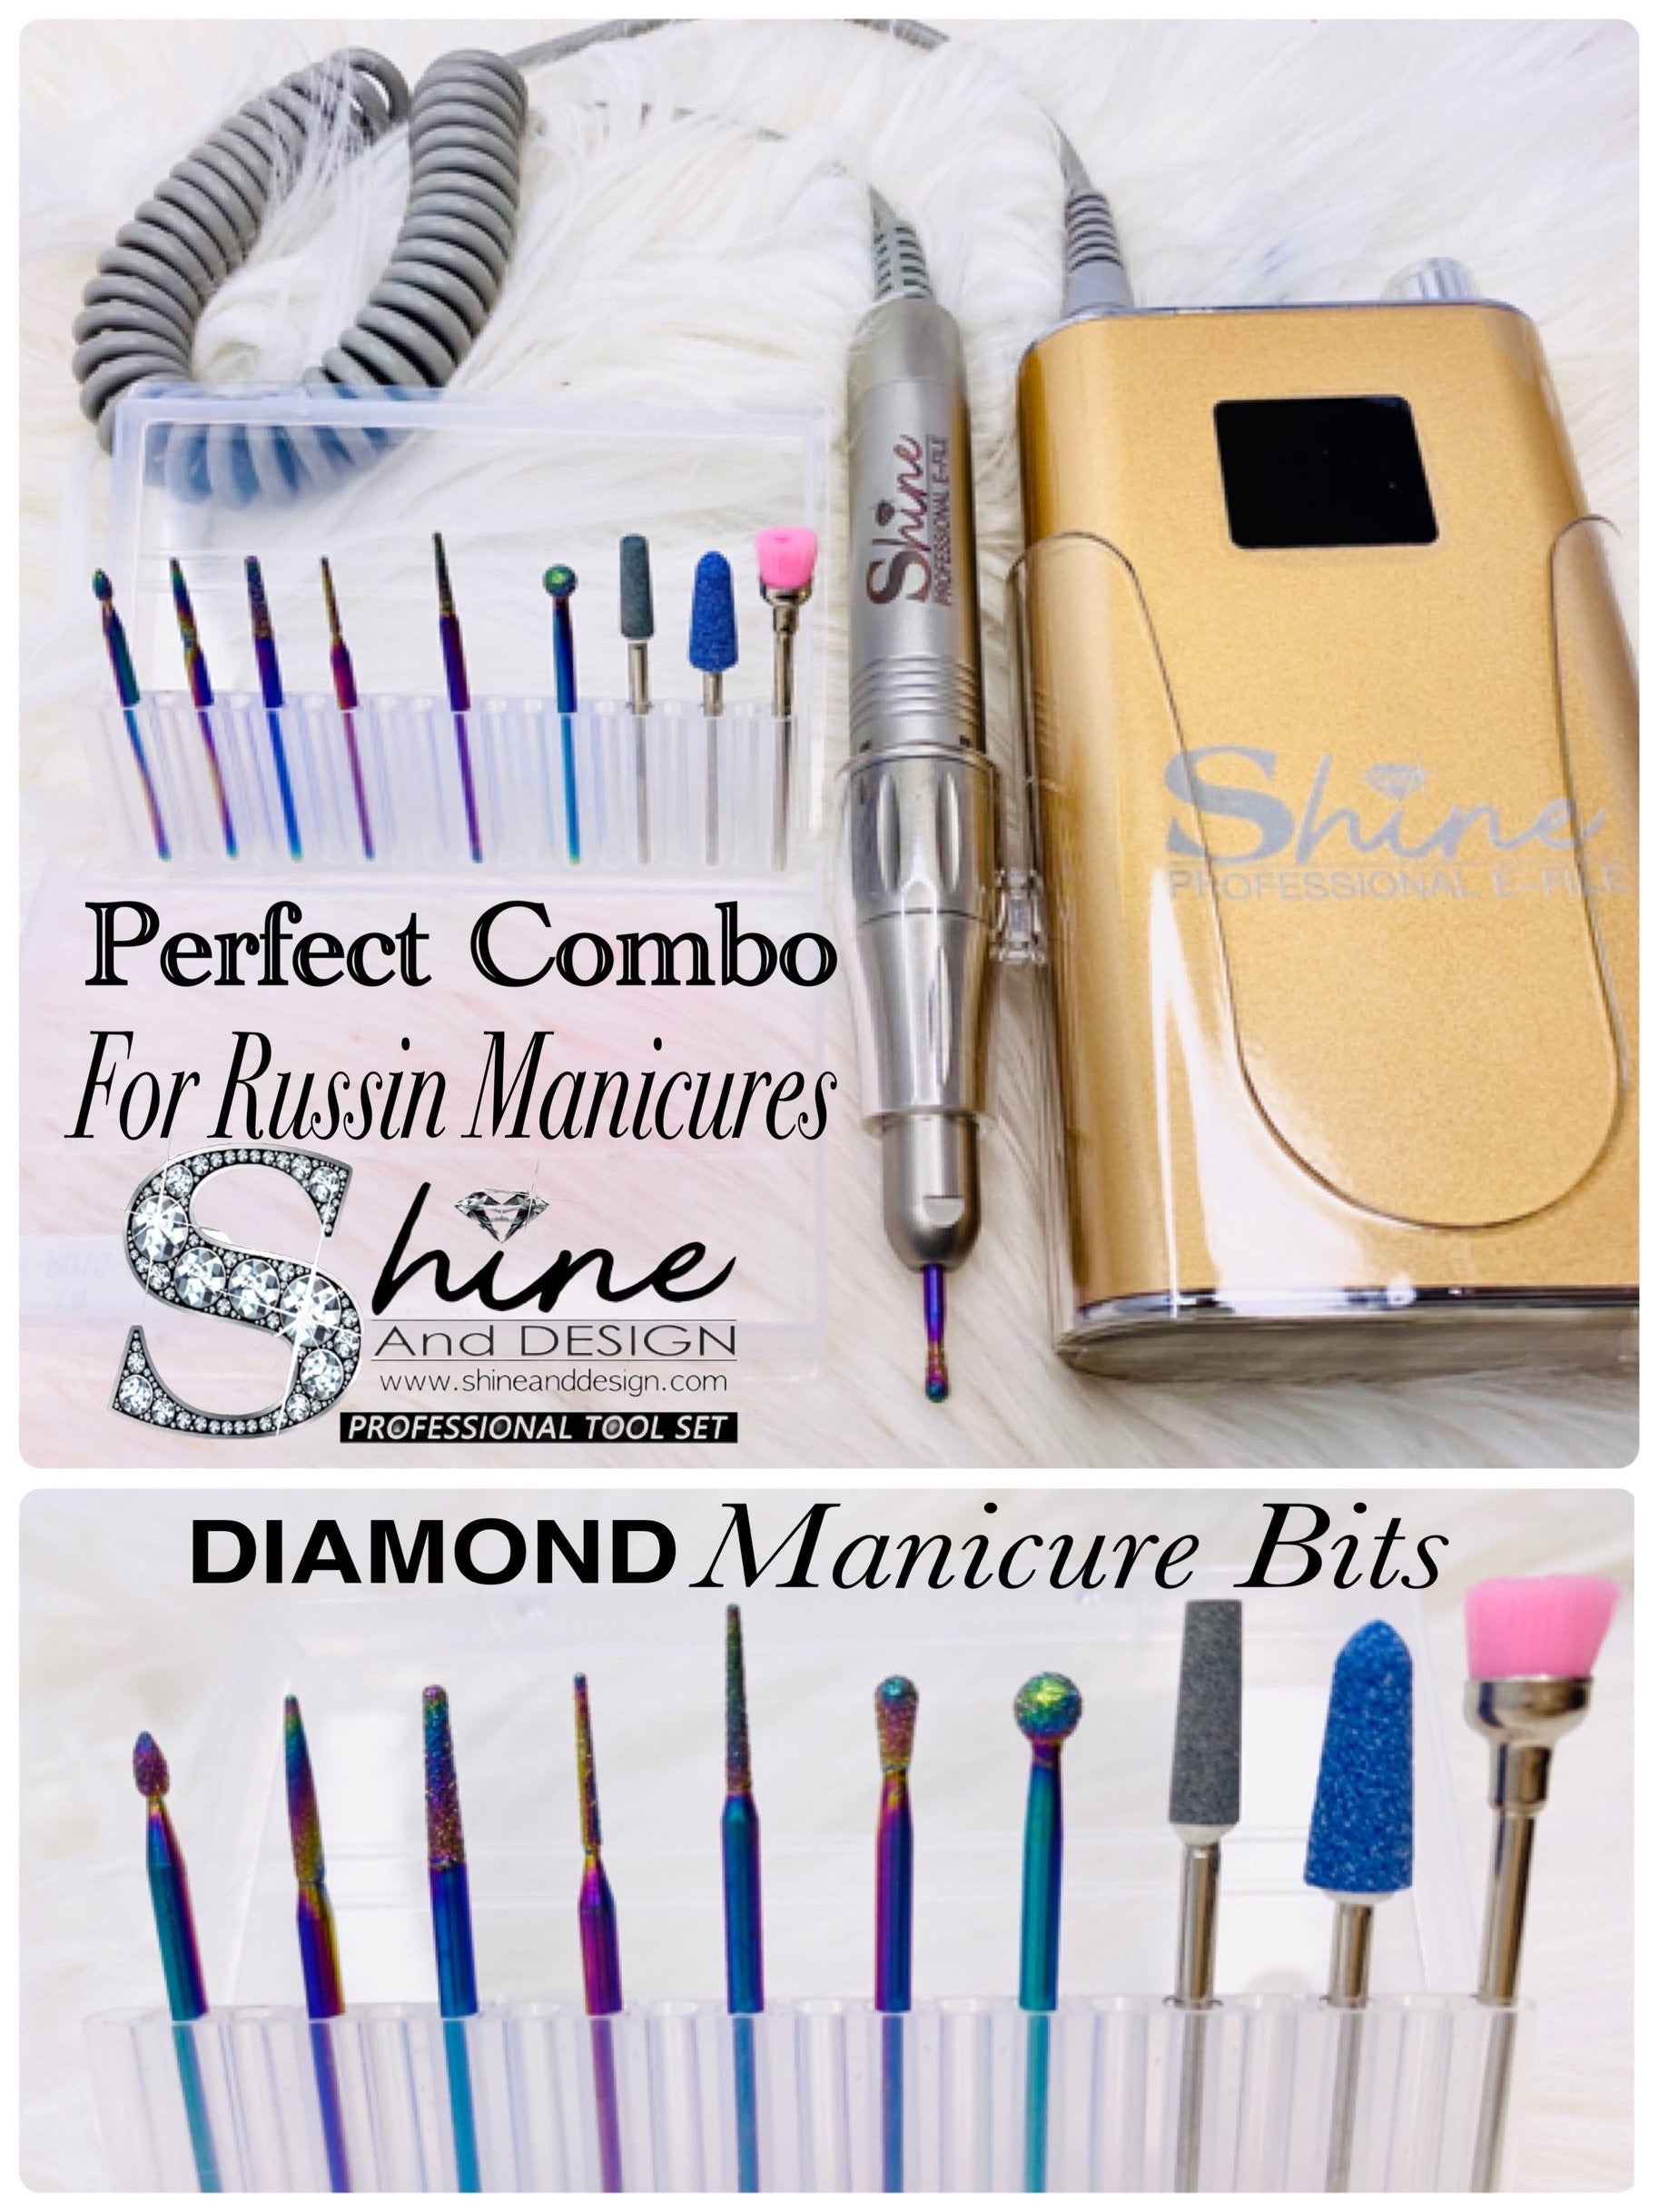 SHINE Professional Starter Kit - Everything you need!